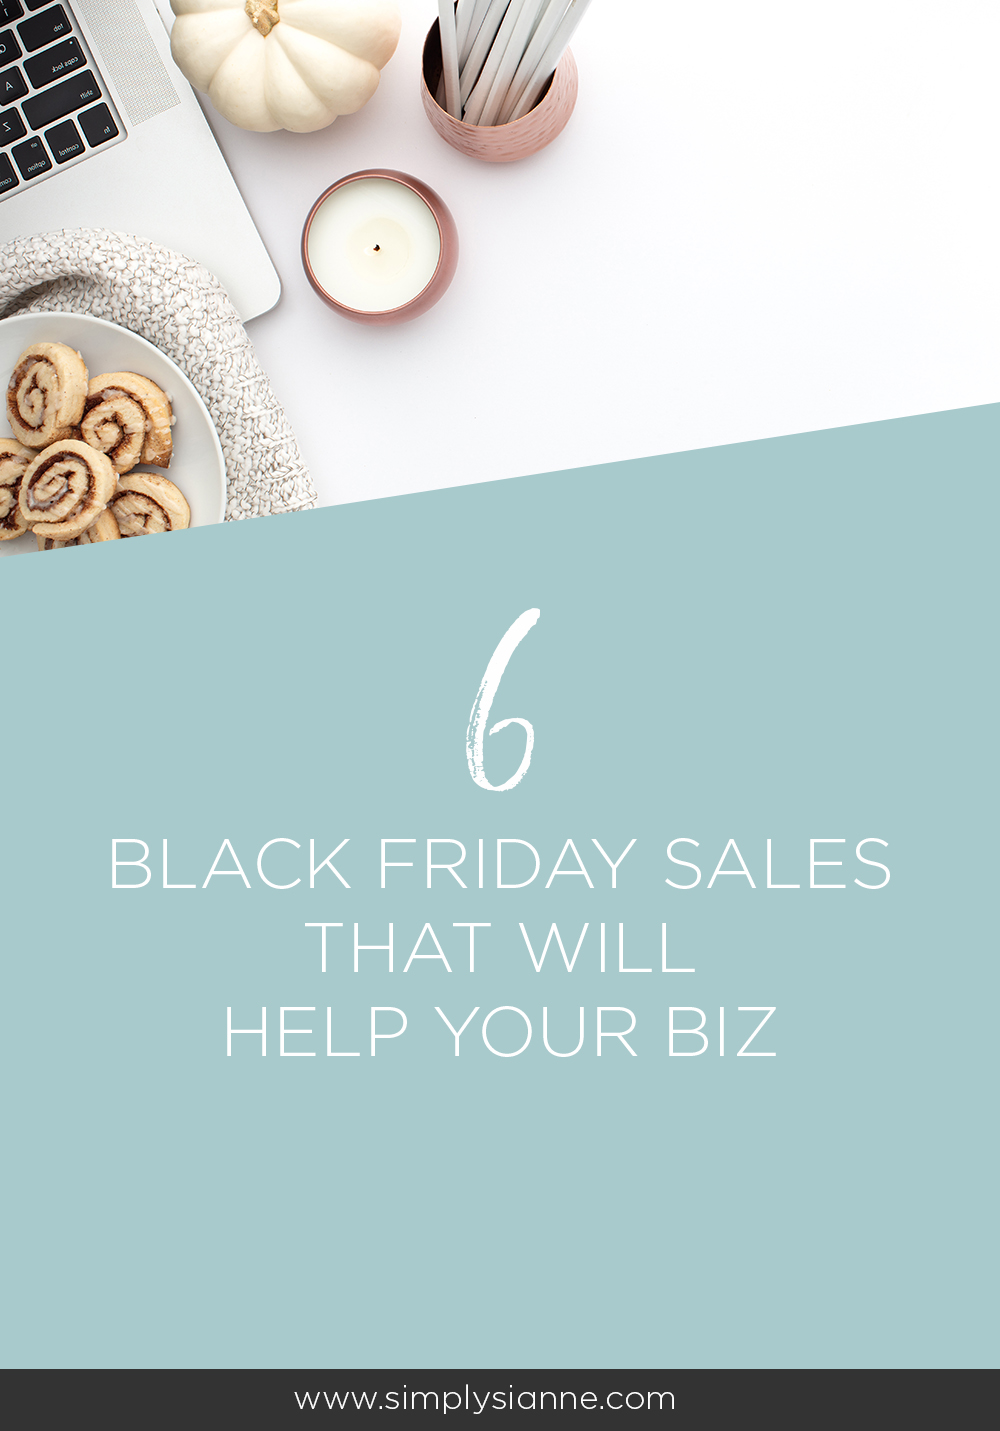 6 Black Friday Sales that will help your business - because getting a good deal on awesome products is the best!